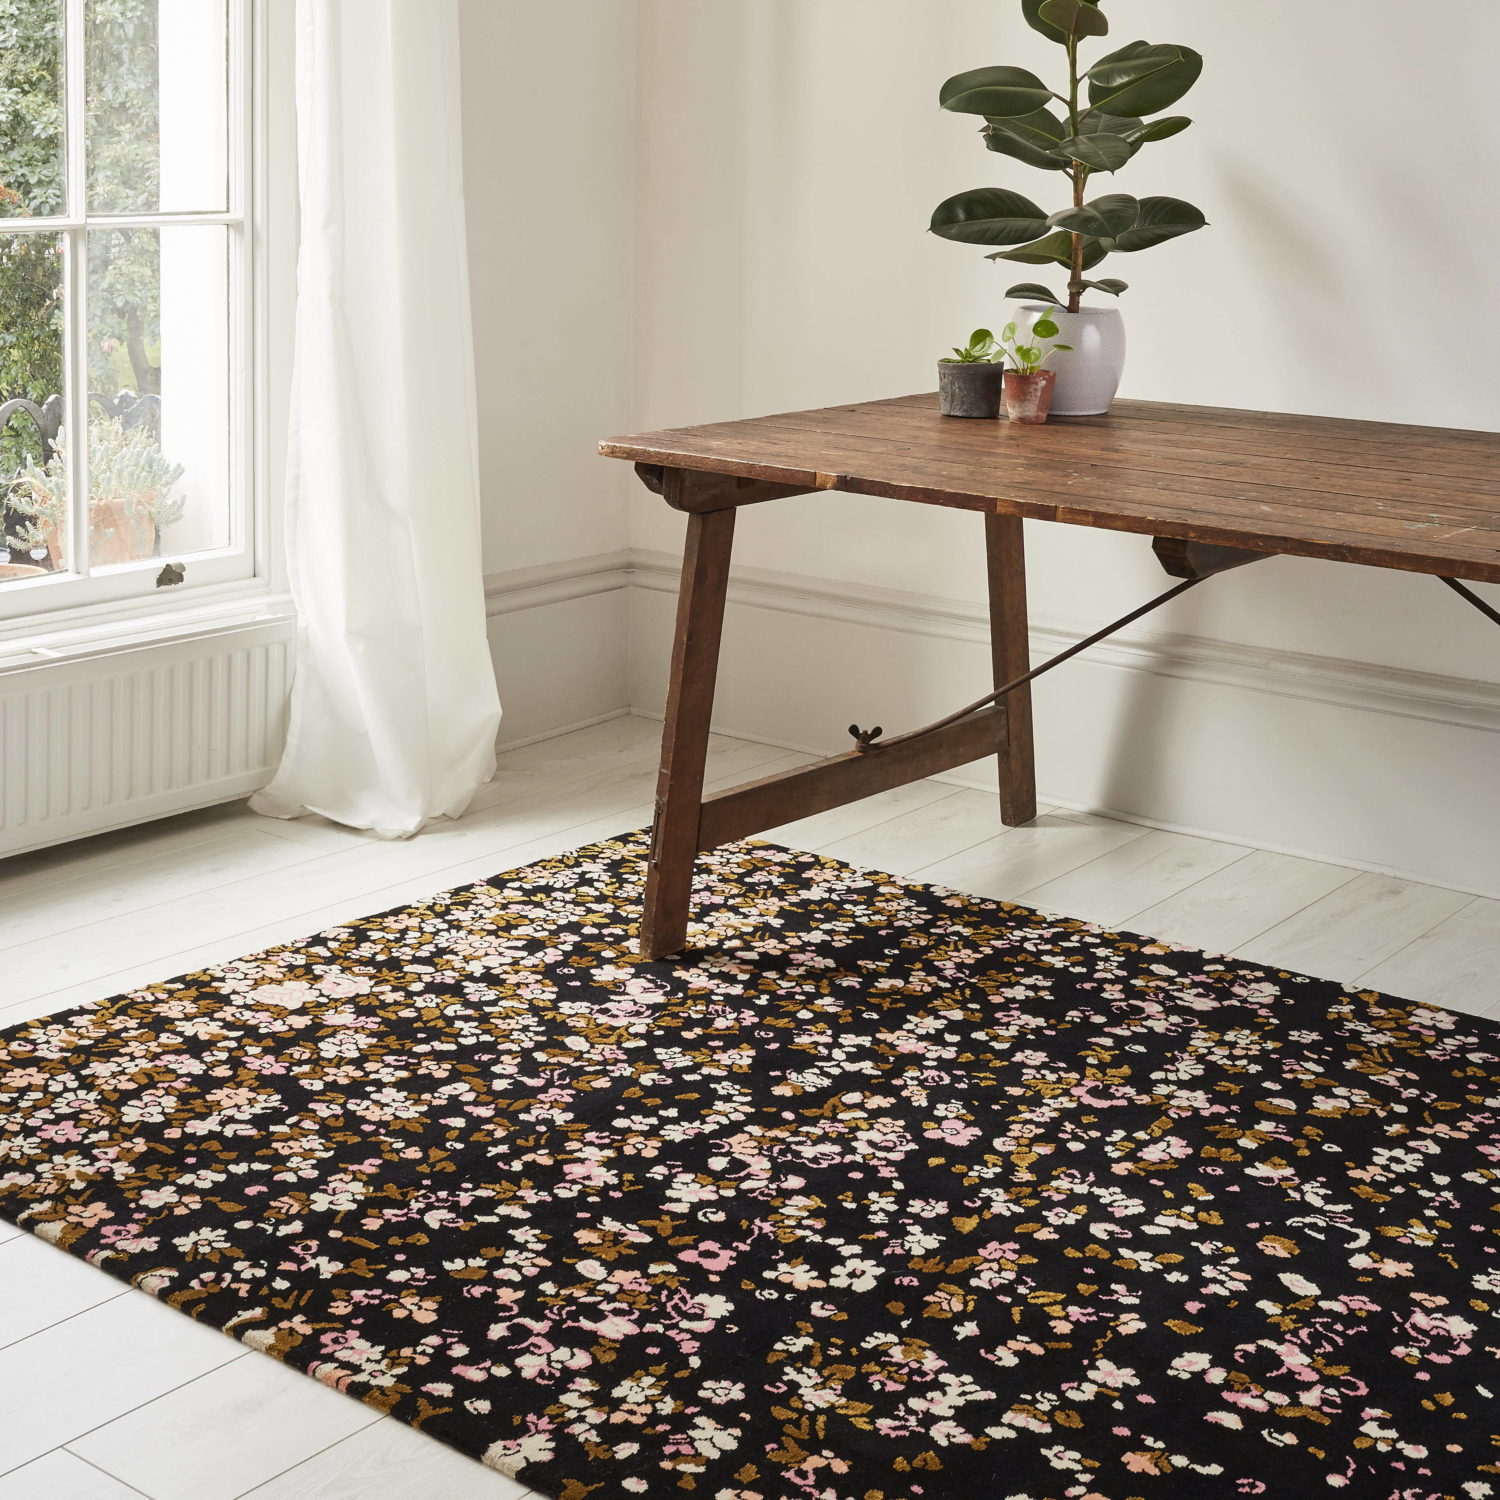 An exquisite hand-knotted rug inspired by the hidden treasures discovered in property restoration